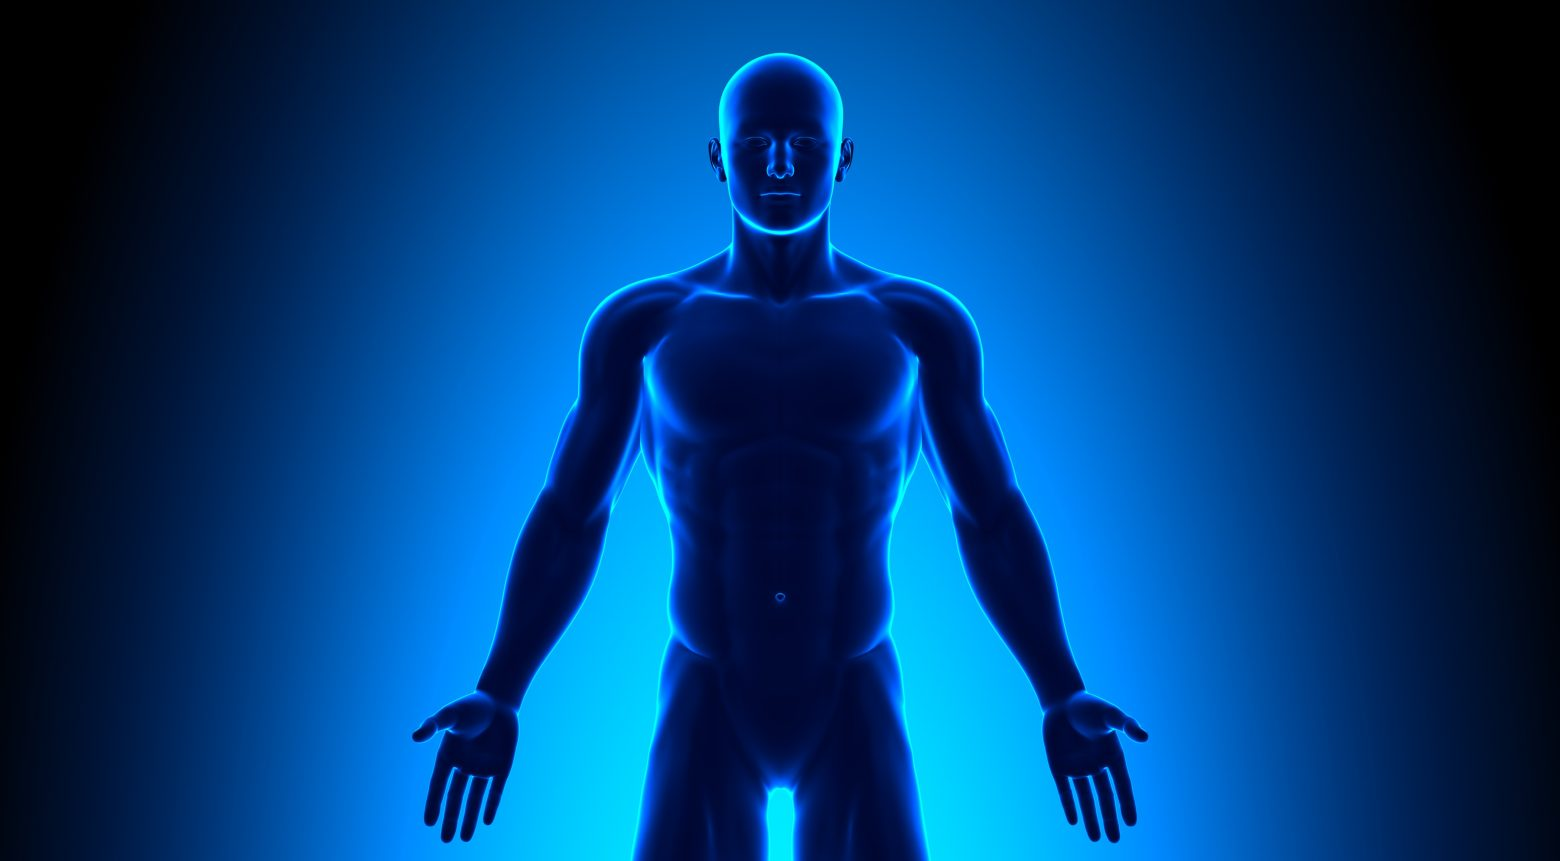 Full Body - Front View Blue concept